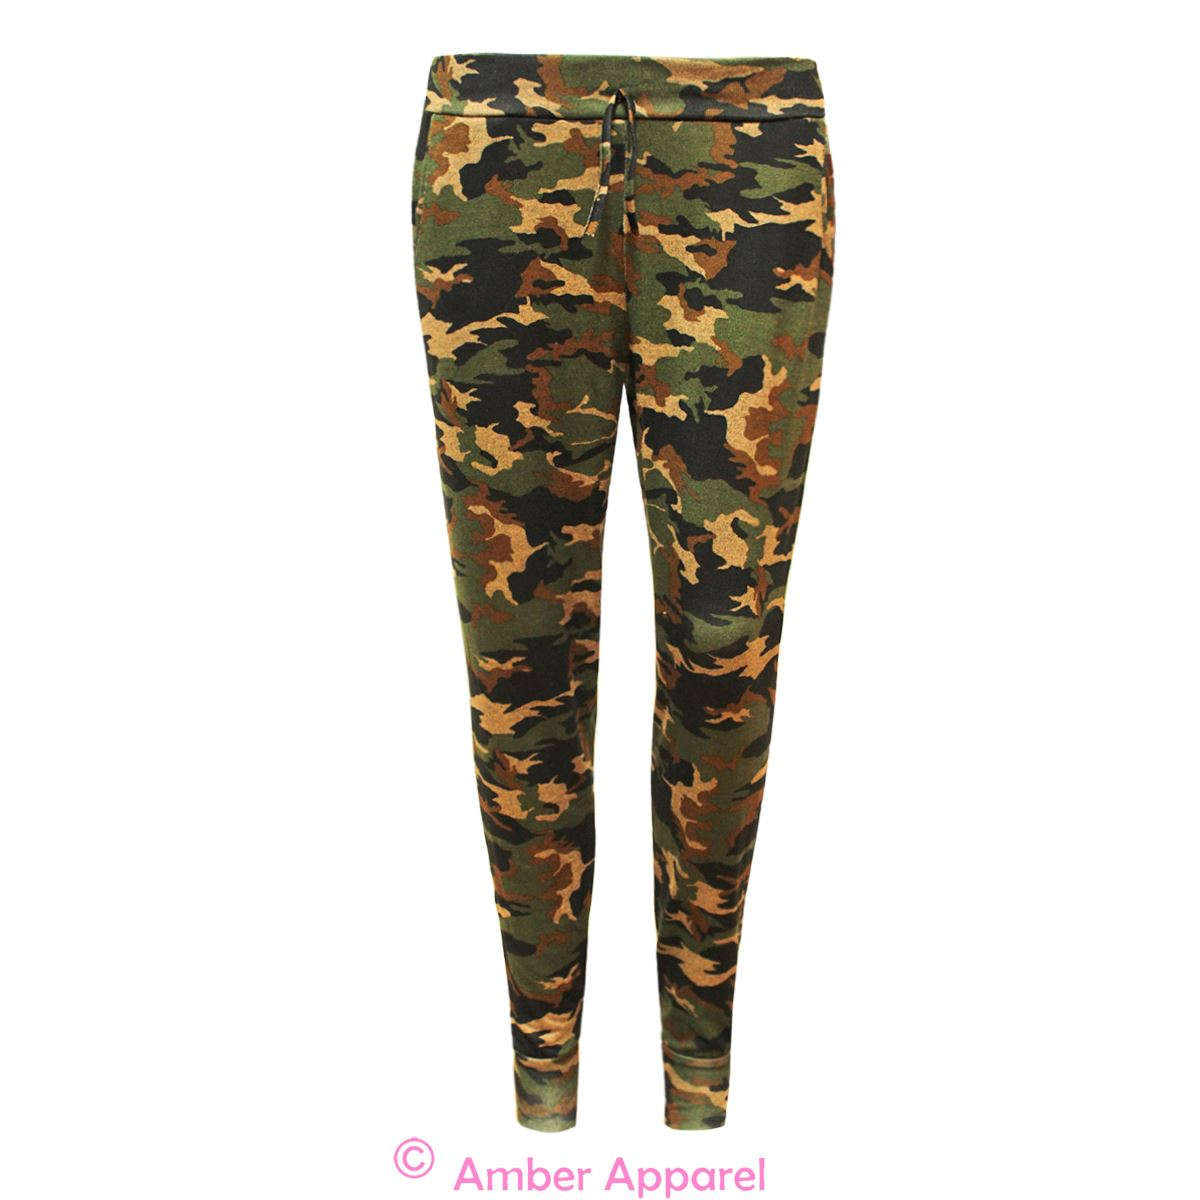 Beautiful 22 New Jogger Pants For Women Camouflage | Sobatapk.com